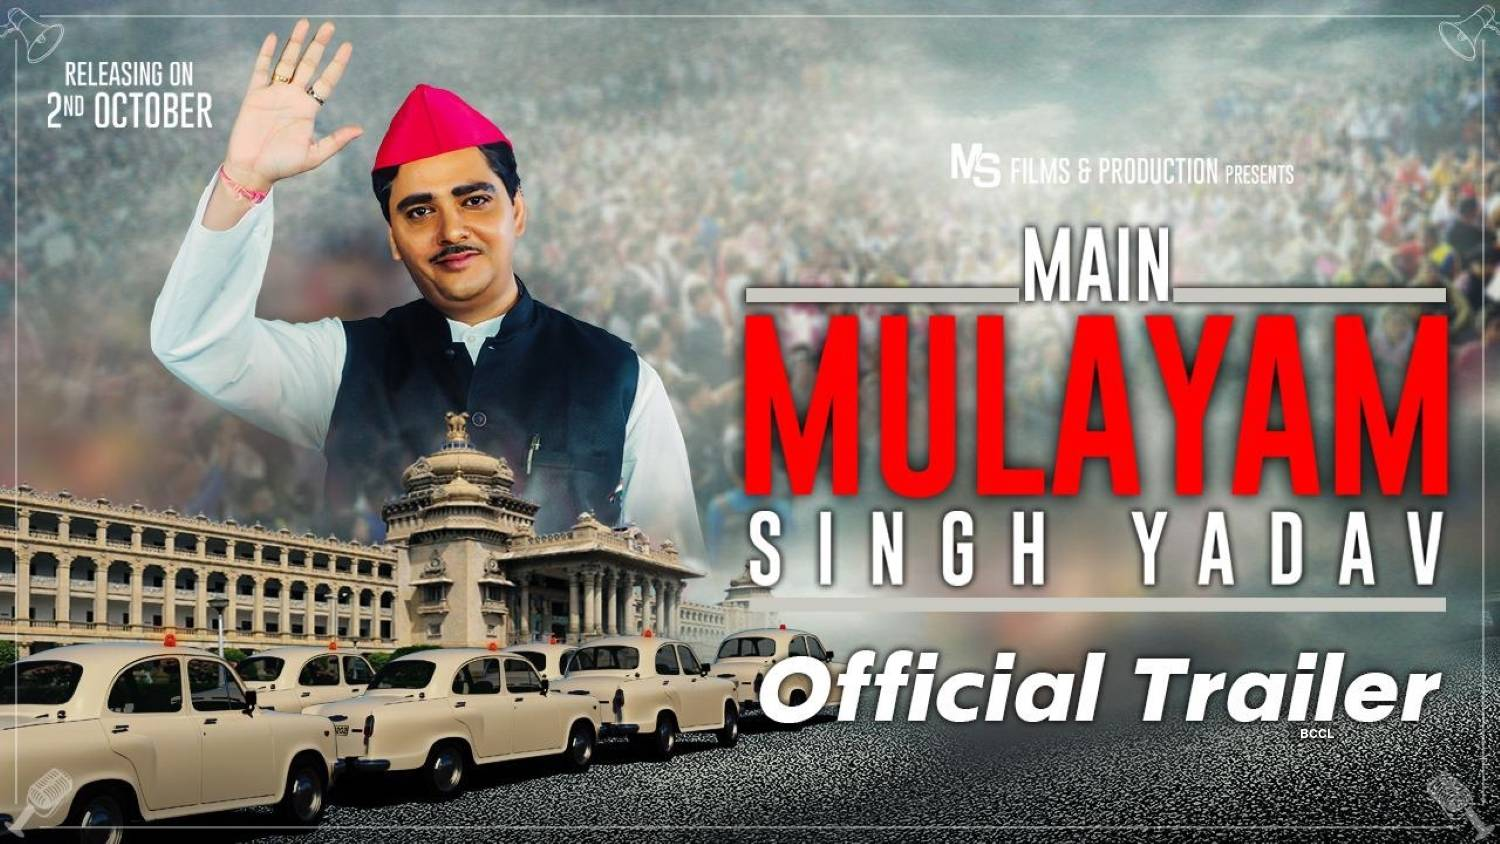 'Main Mulayam Singh Yadav' trailer out, film to release on 2nd October